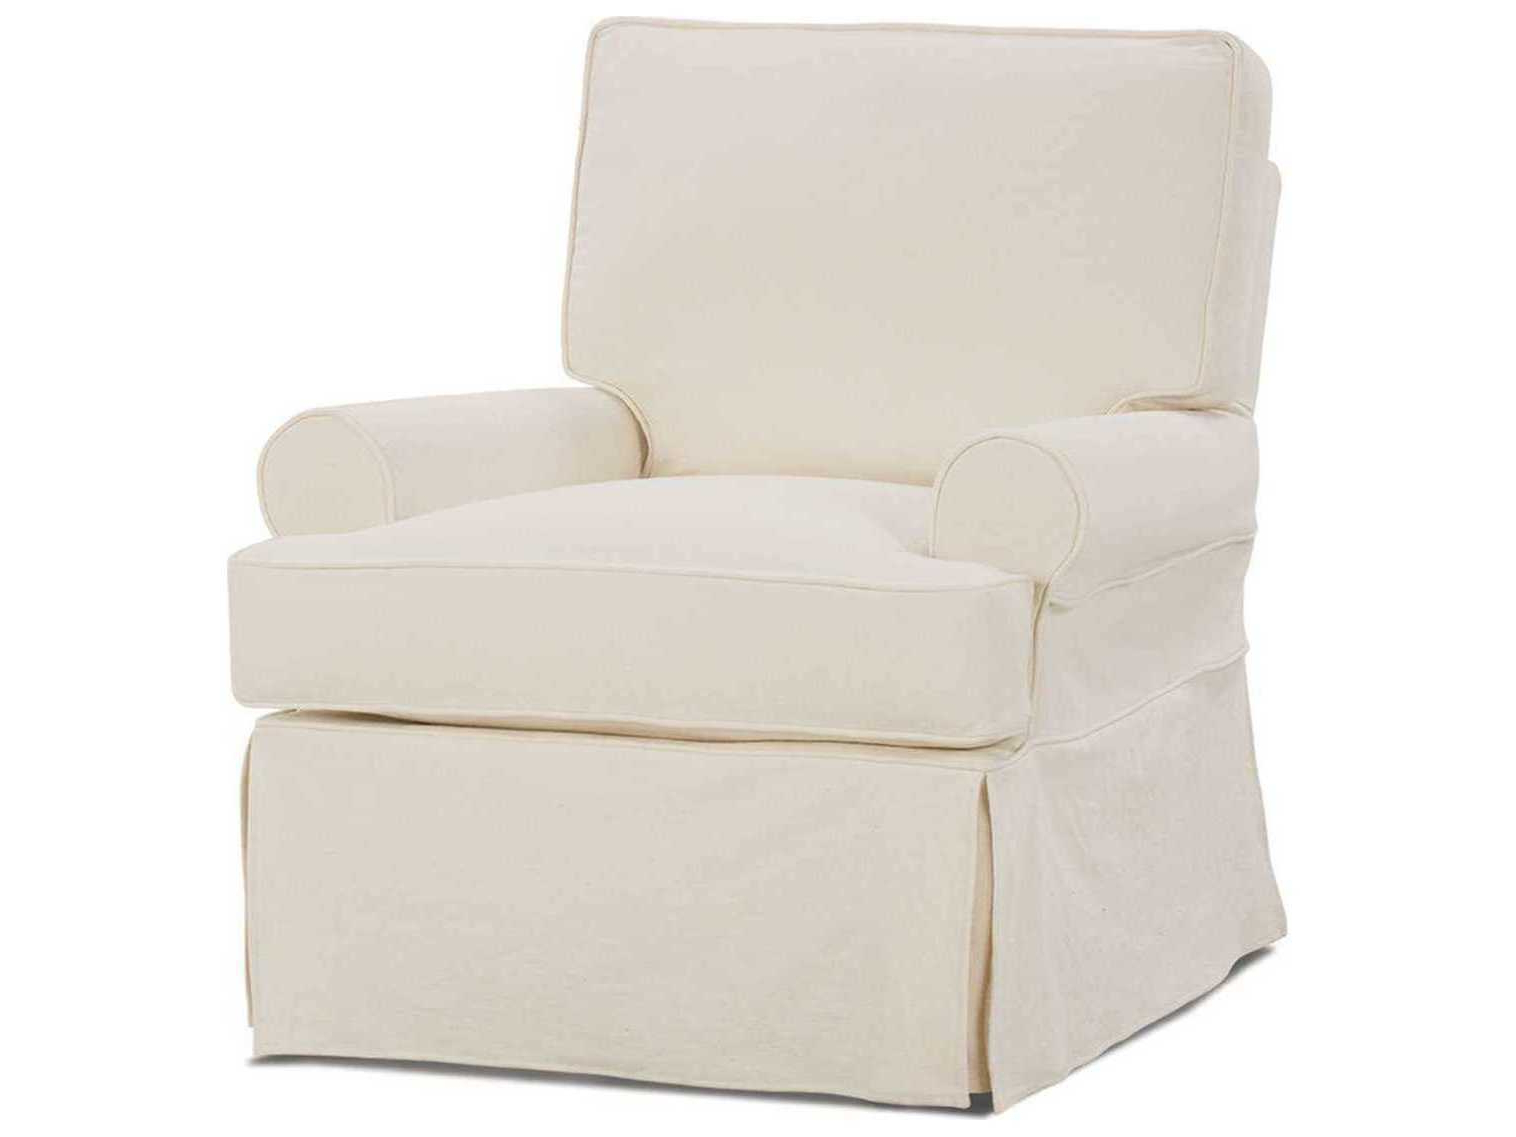 Decker Ii Fabric Swivel Rocker Recliners Within Popular Tag Archived Of Loveseat Couch Cover : Winning Loveseat Sofa Bed (Gallery 20 of 20)